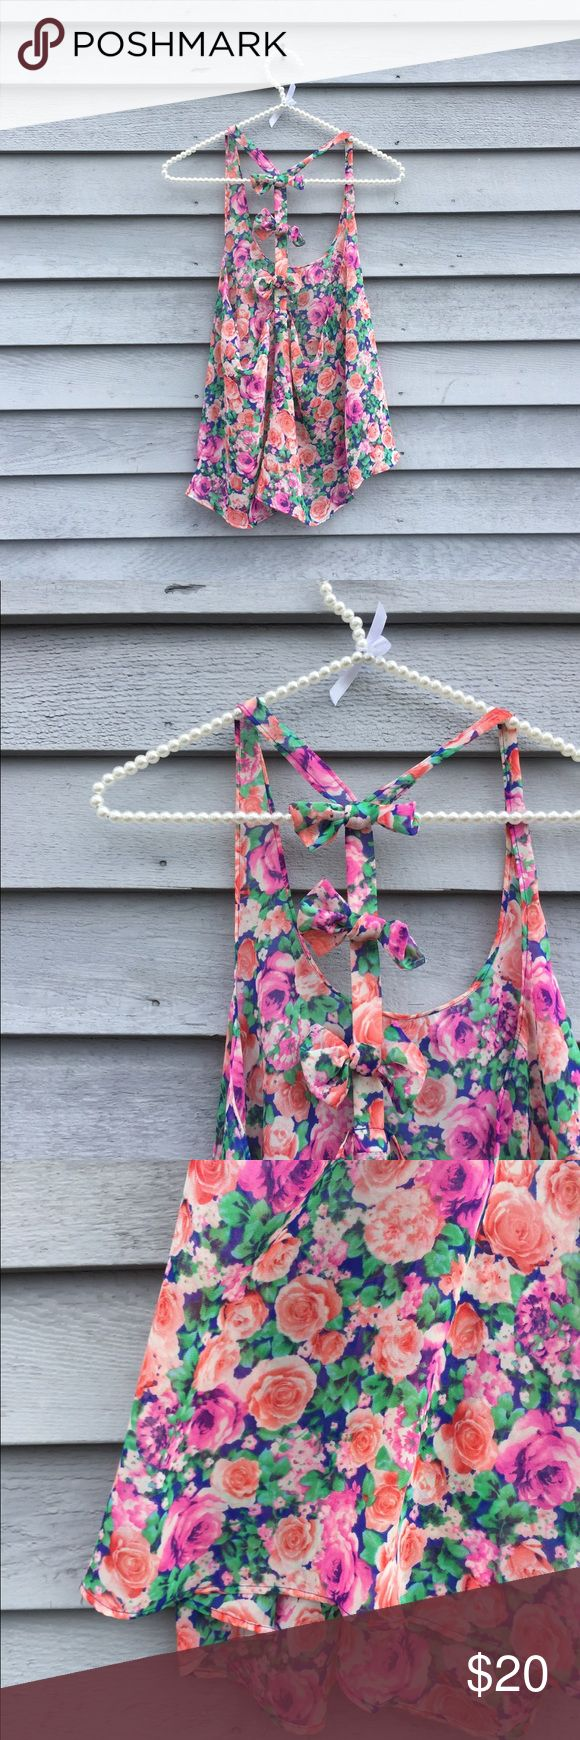 Sheer Floral Bow Back Tank Lightweight flowy tank top, floral pattern with a bow back detail. Forever 21 Tops Tank Tops